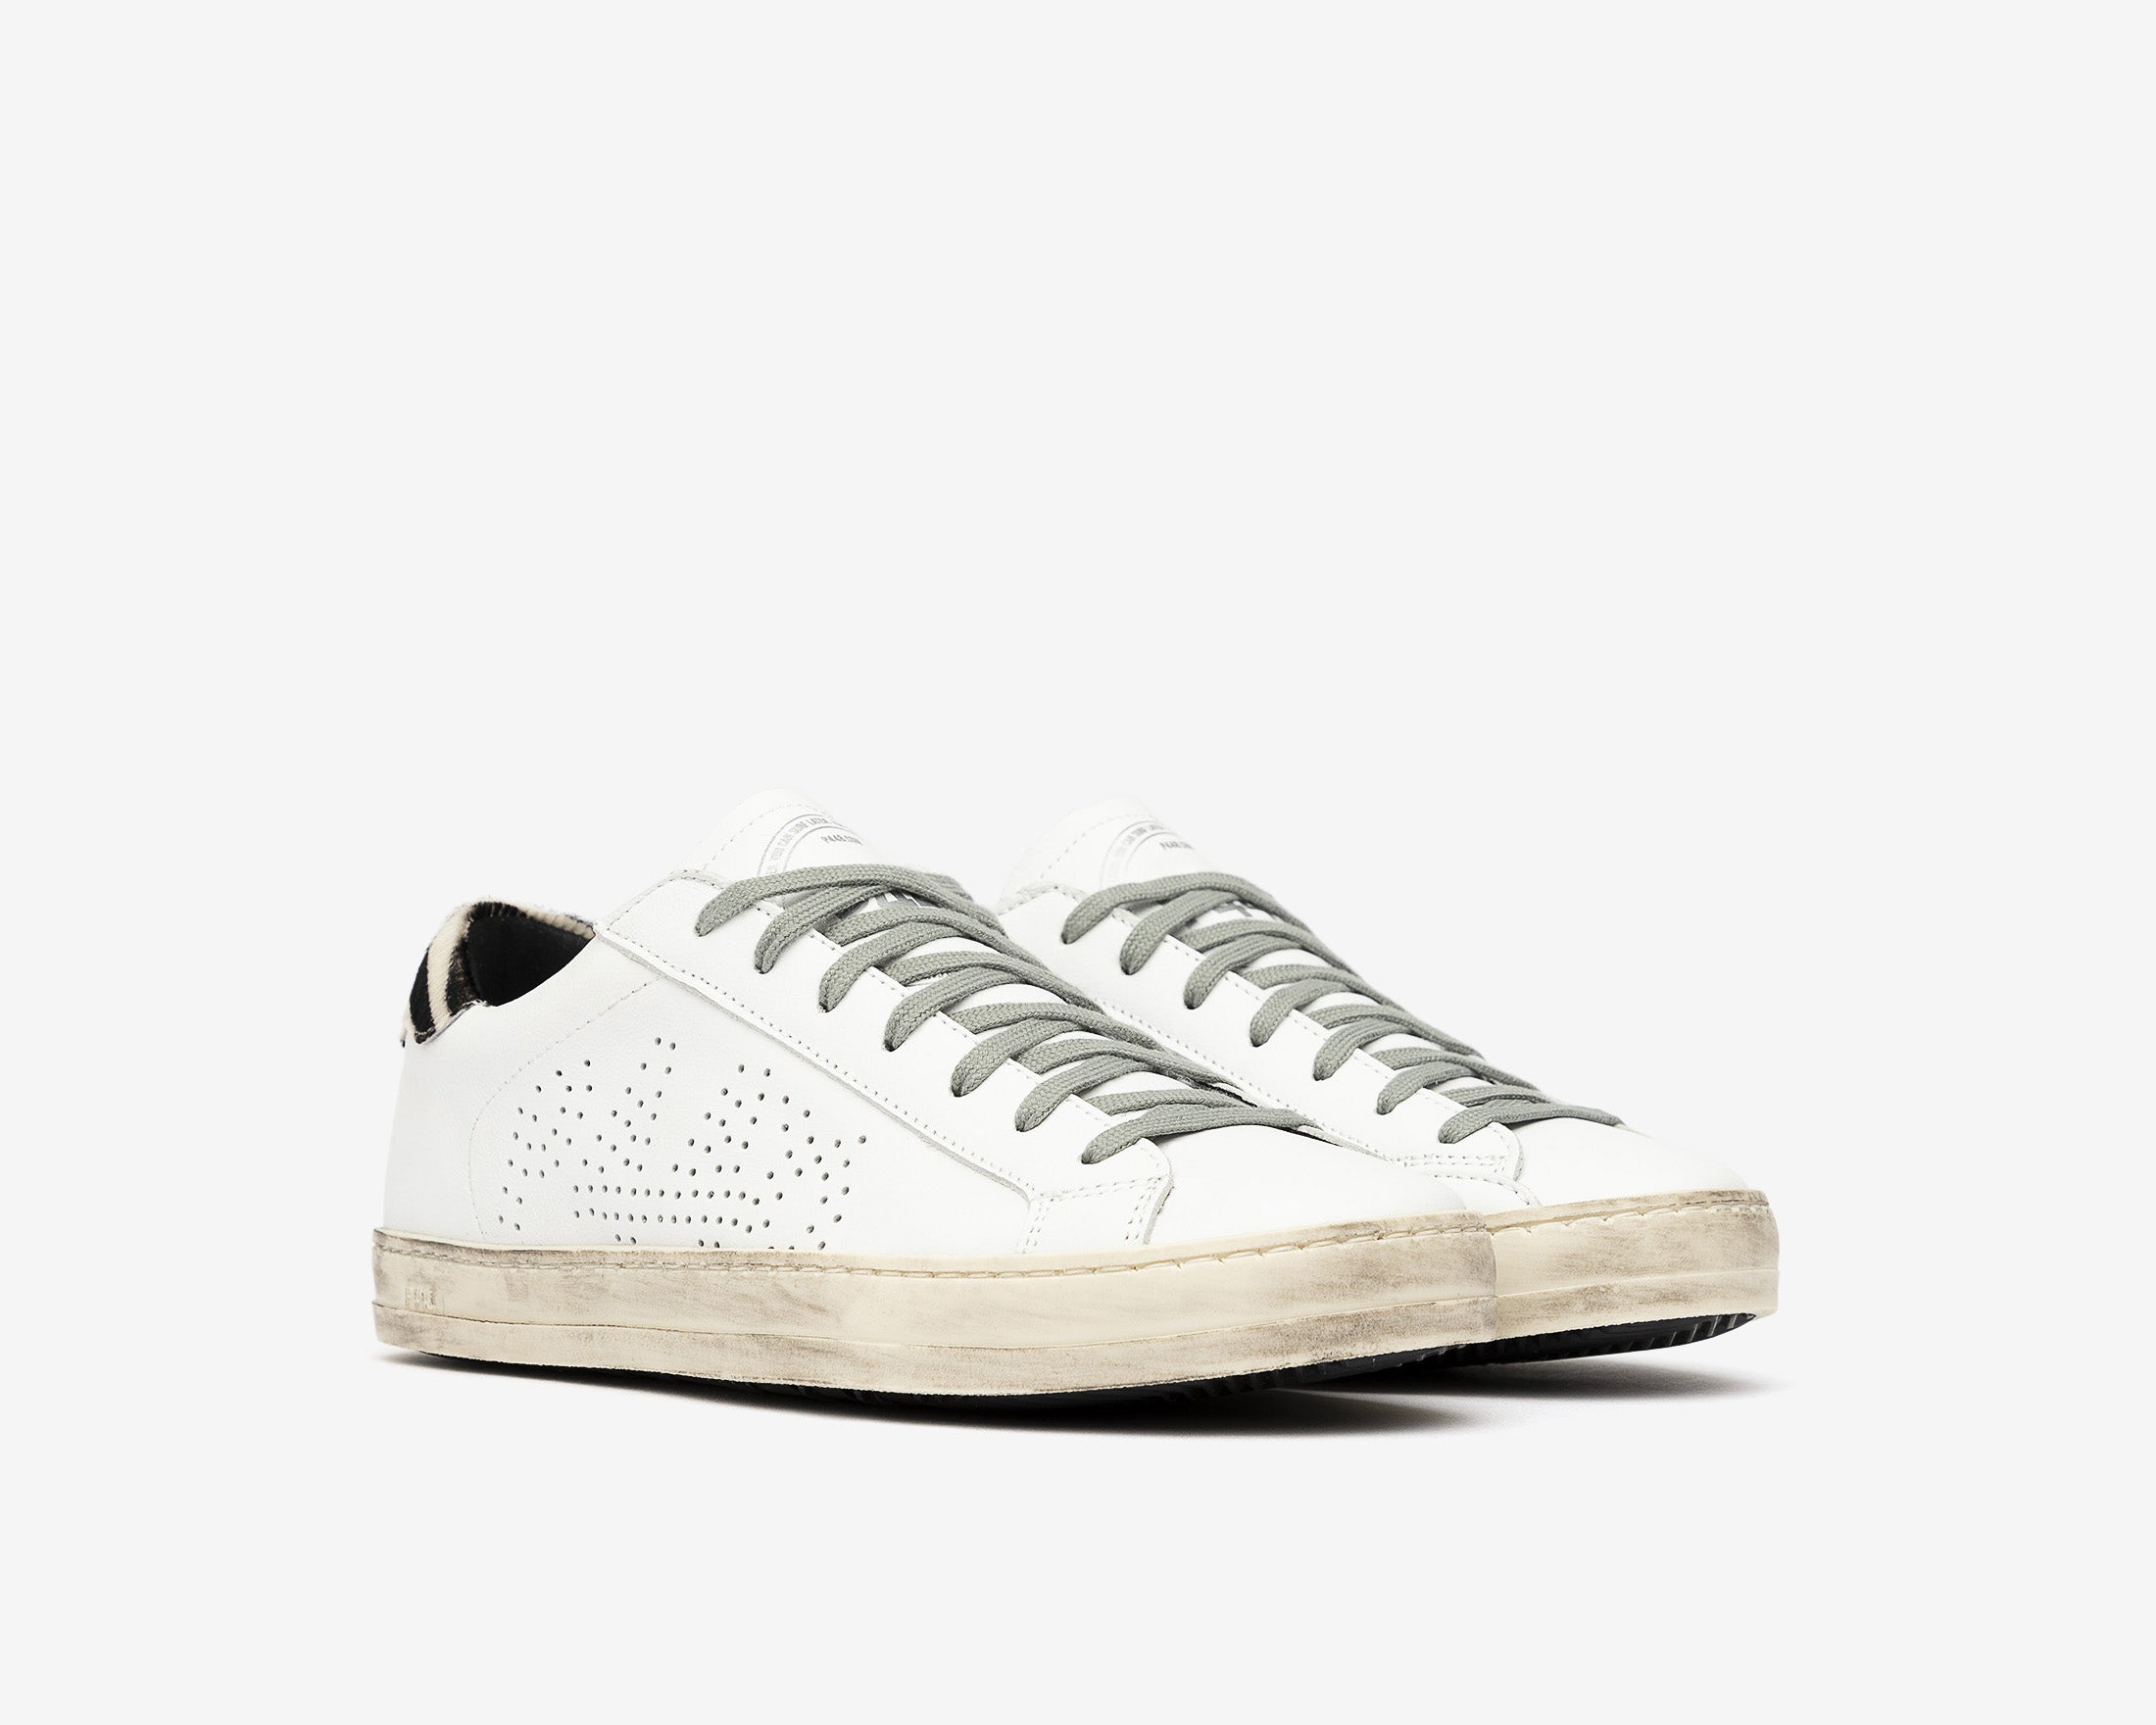 John Low-Top Sneaker in White/CZebra - Side